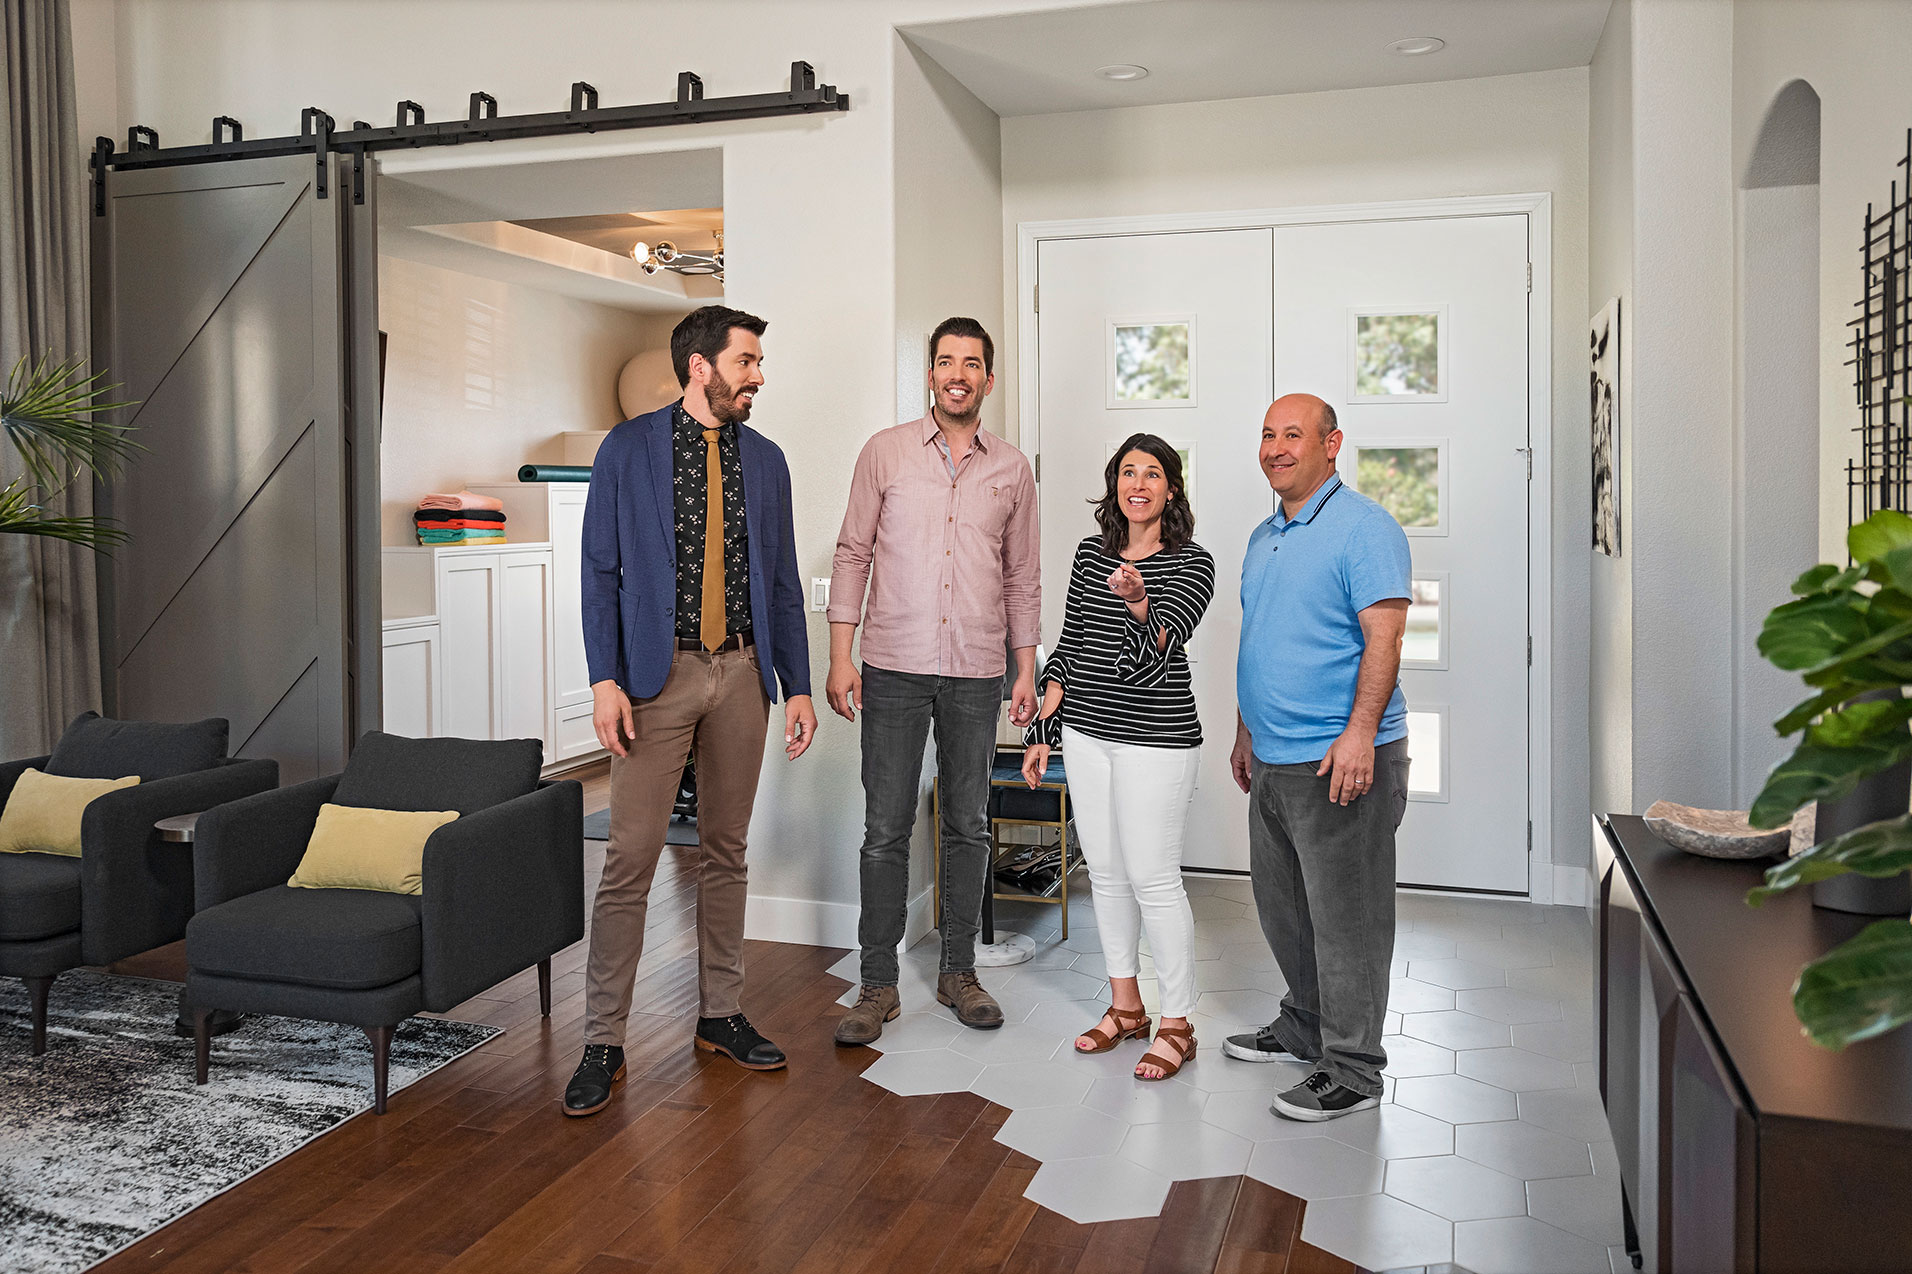 The Property Brothers' New Show Forever Home Will Have 'More Heart': 'We Love What We Do'